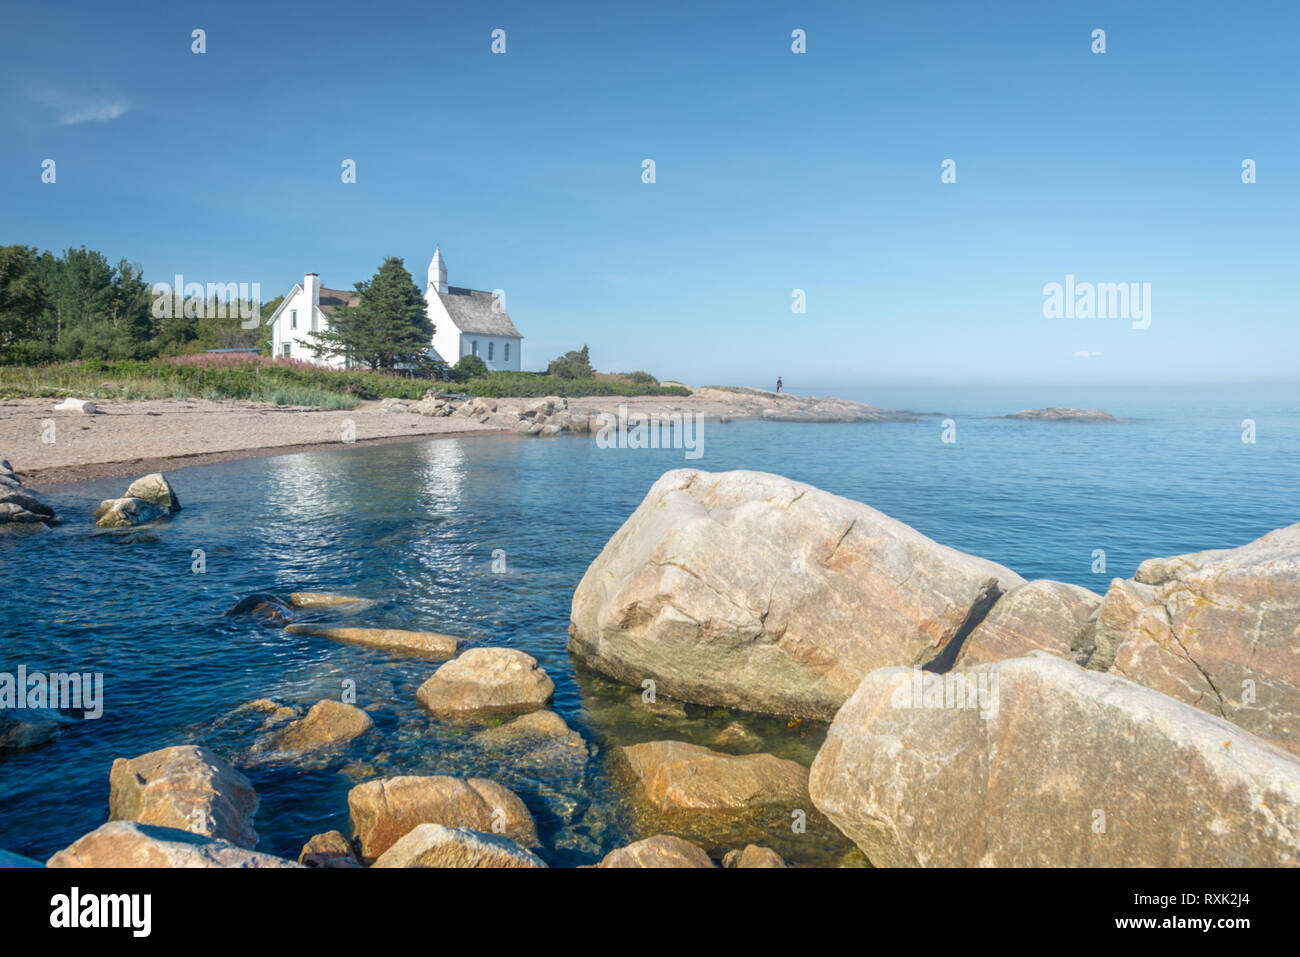 View on the McLaren chapel set on the shore of the St.Lawrence River in Port-au-Persil, province of Quebec, Canada Stock Photo